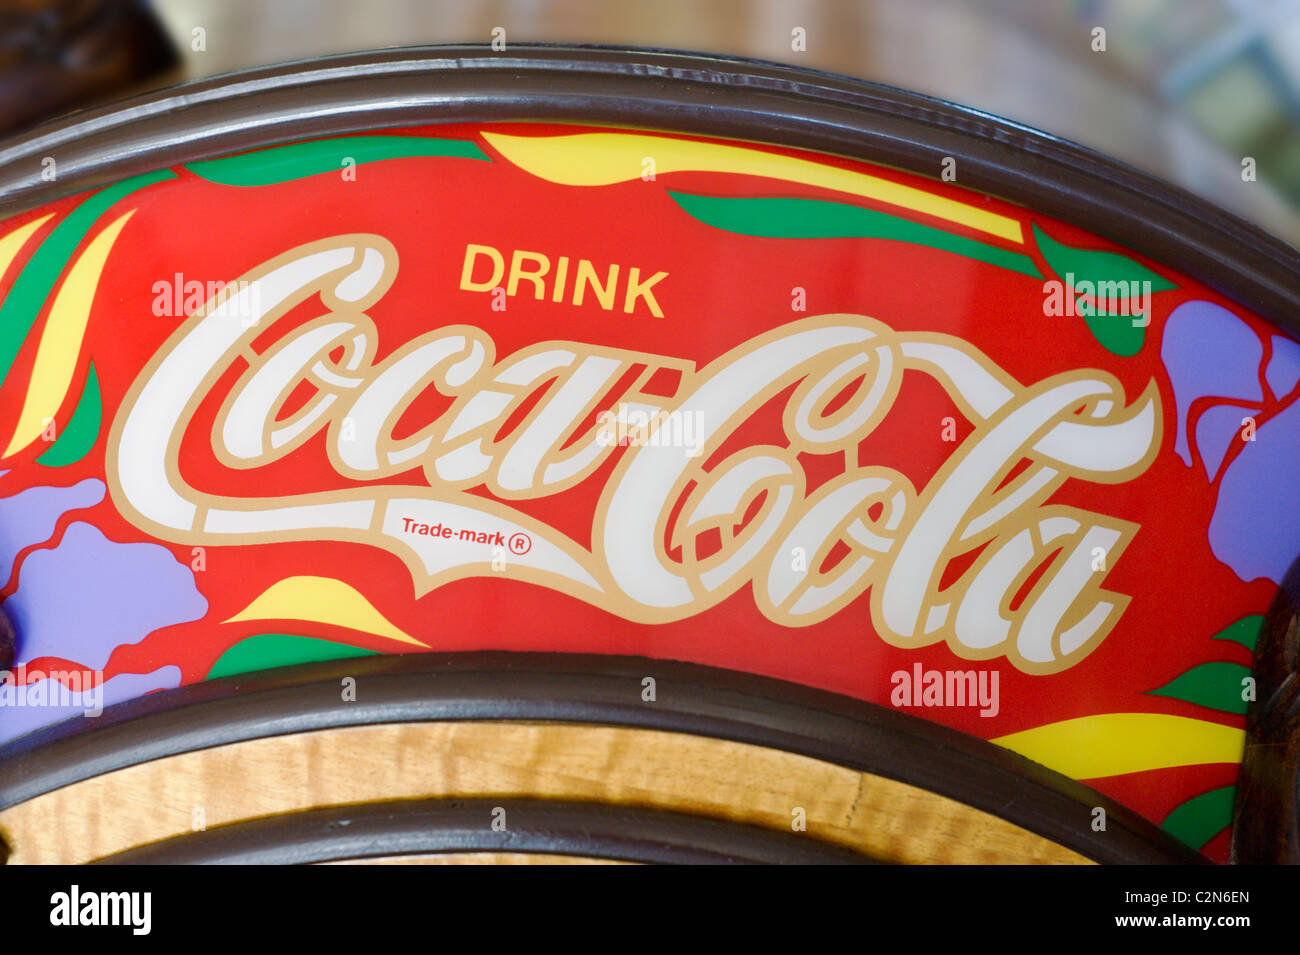 Roy's Ice Cream Parlor has a vintage jukebox with Coke advertising, in Carrizozo, New Mexico. - Stock Image